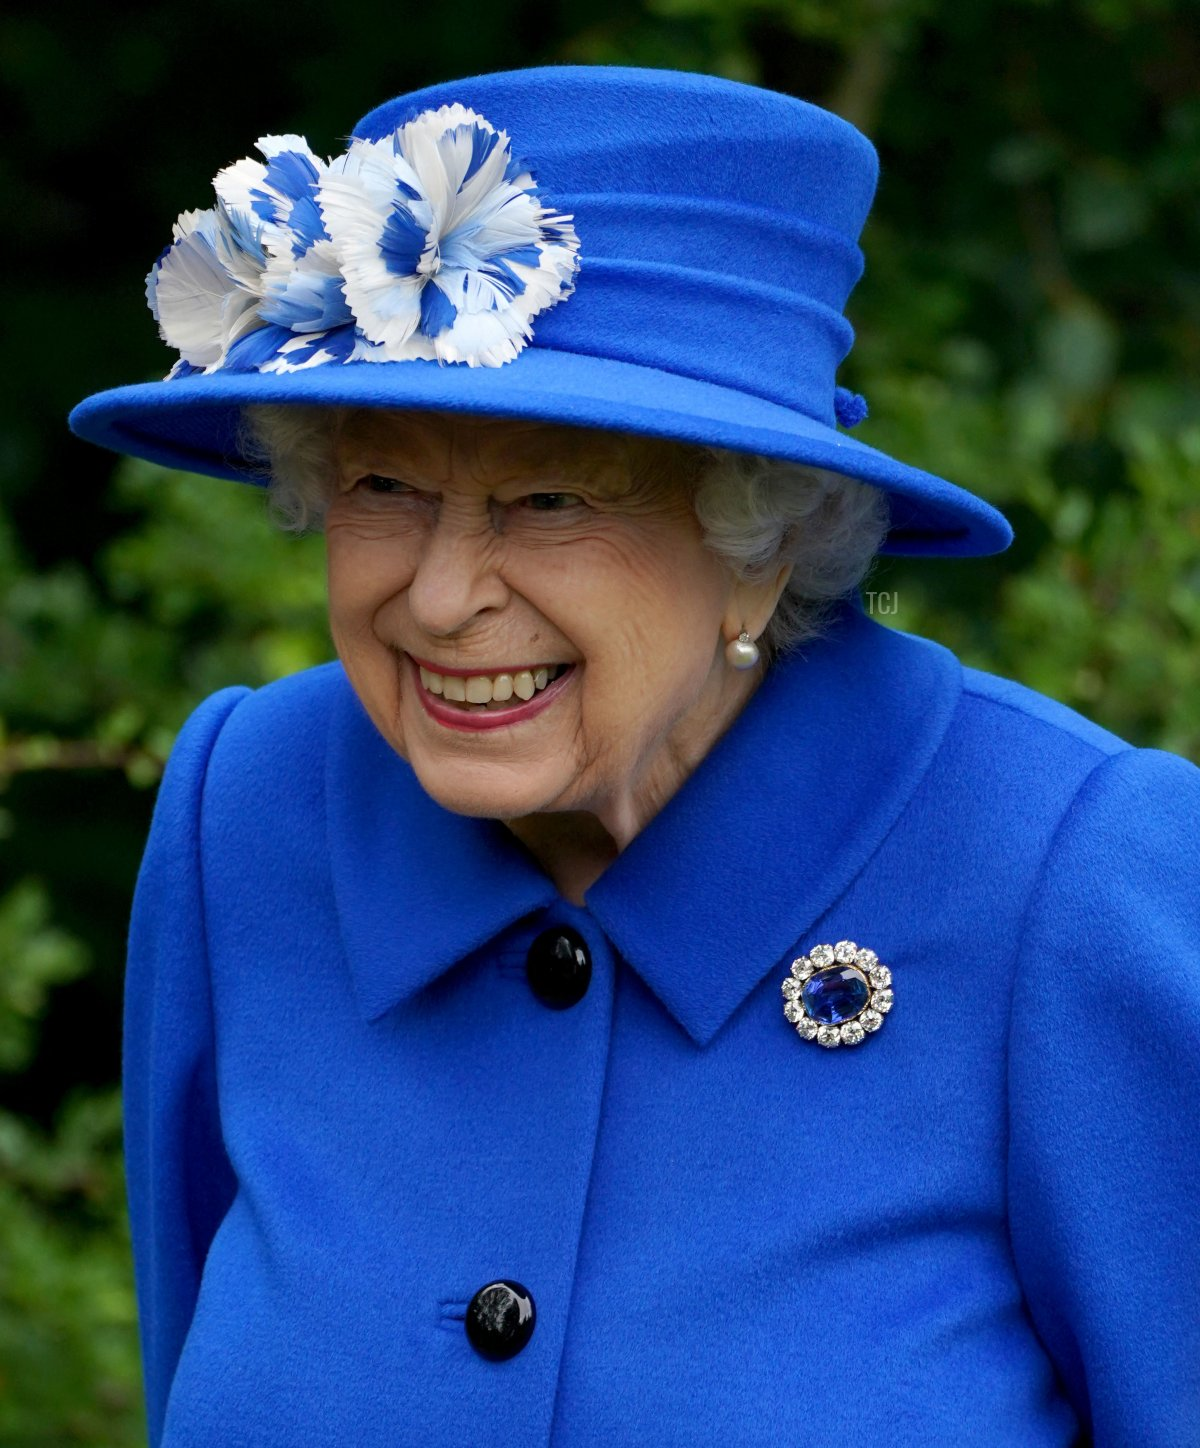 Britain's Queen Elizabeth II gestures as she meets participants during a visit to The Childrens Wood Project in Glasgow on June 30, 2021, as part of her traditional trip to Scotland for Holyrood Week